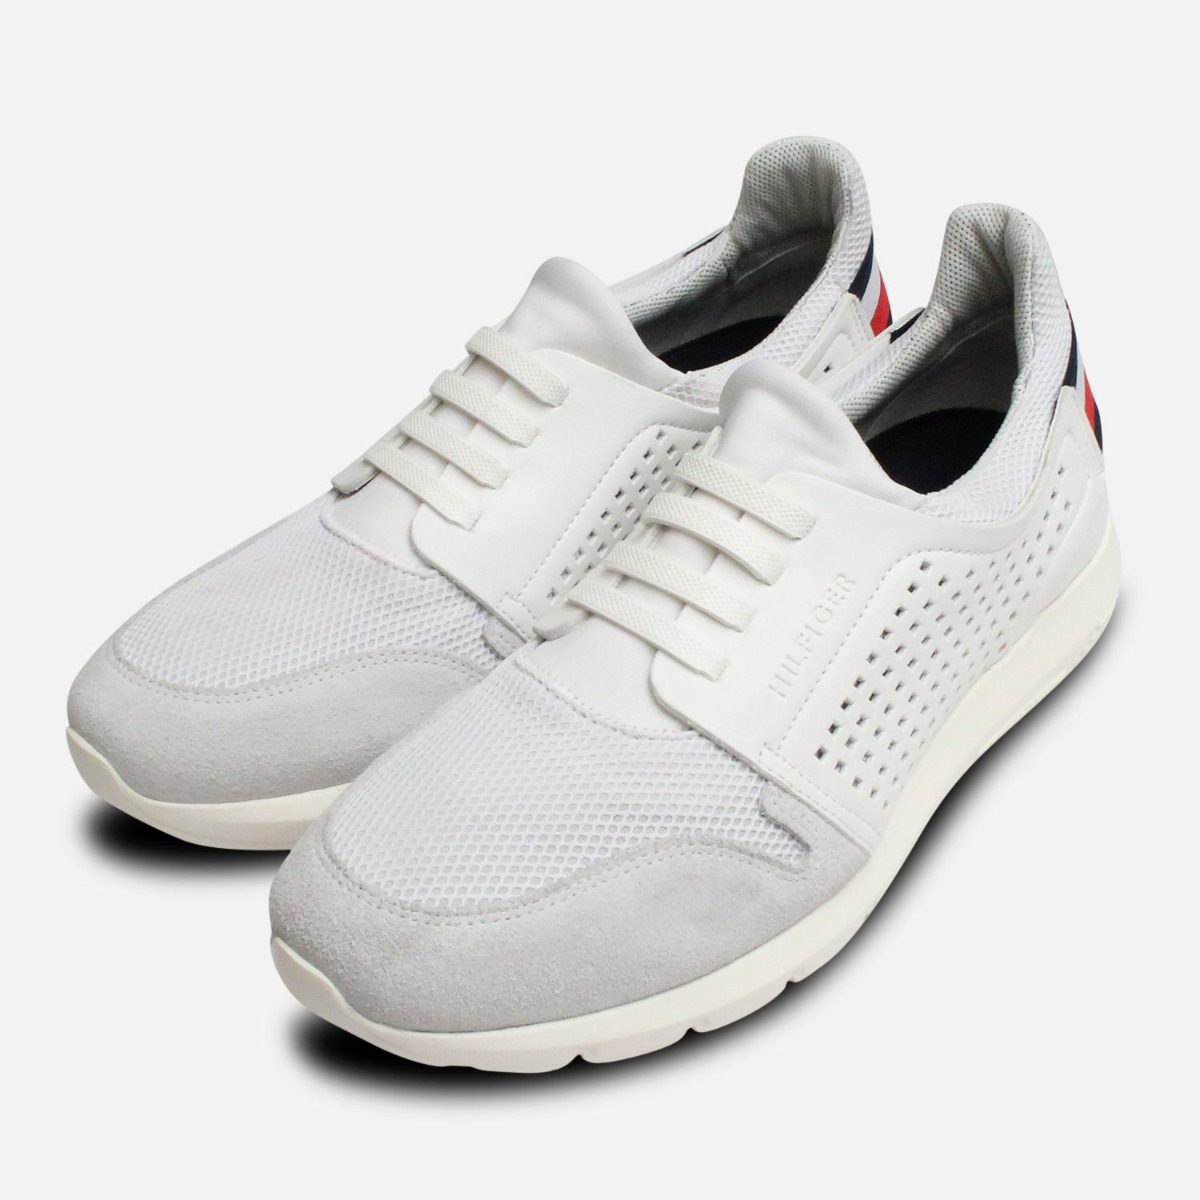 Tommy Hilfiger Jason Men's Lace Up Leather Fashion Sneakers White Multi